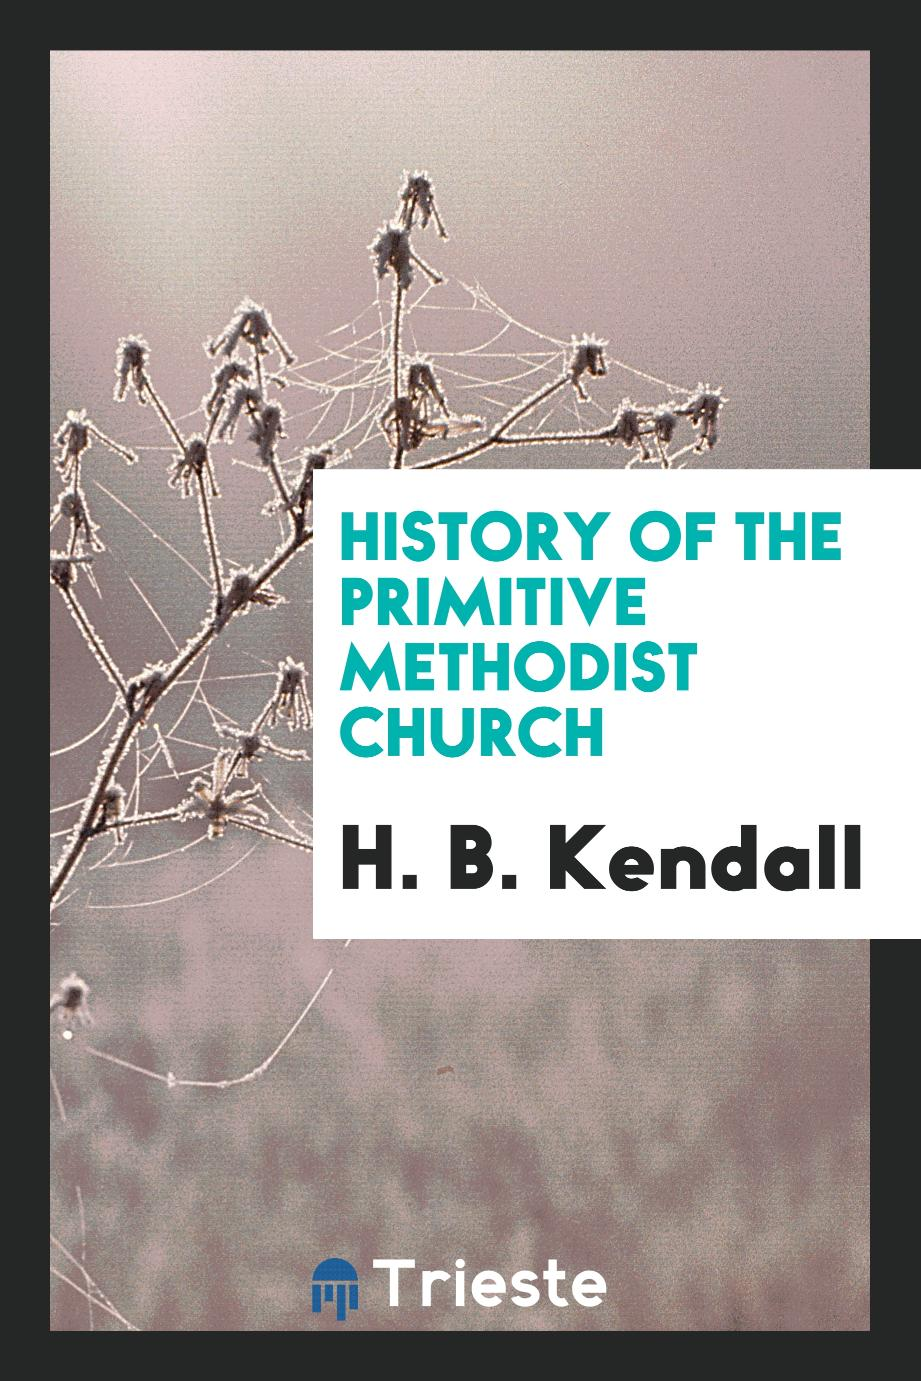 H. B. Kendall - History of the Primitive Methodist Church